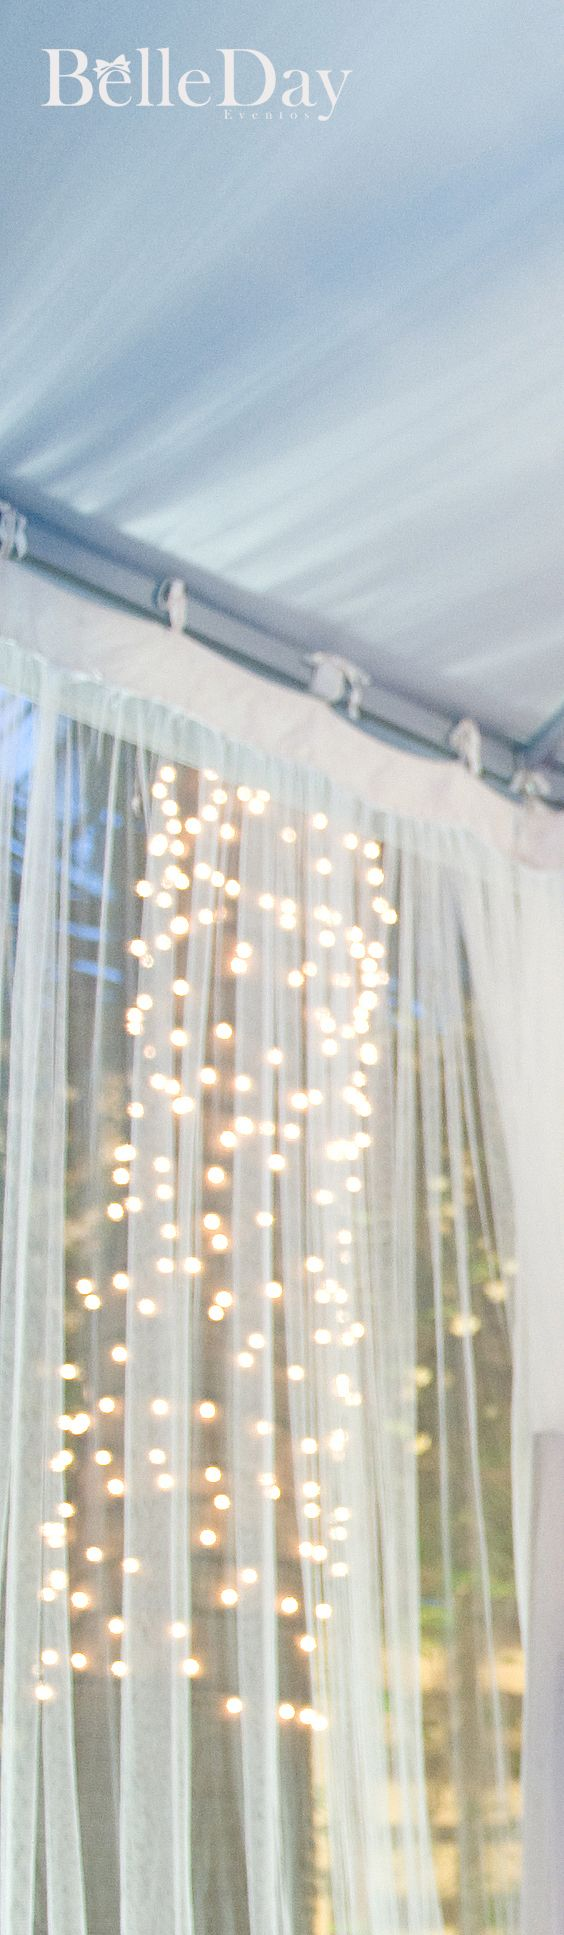 101 best images about craft show ideas on pinterest for Battery operated lights for craft booth